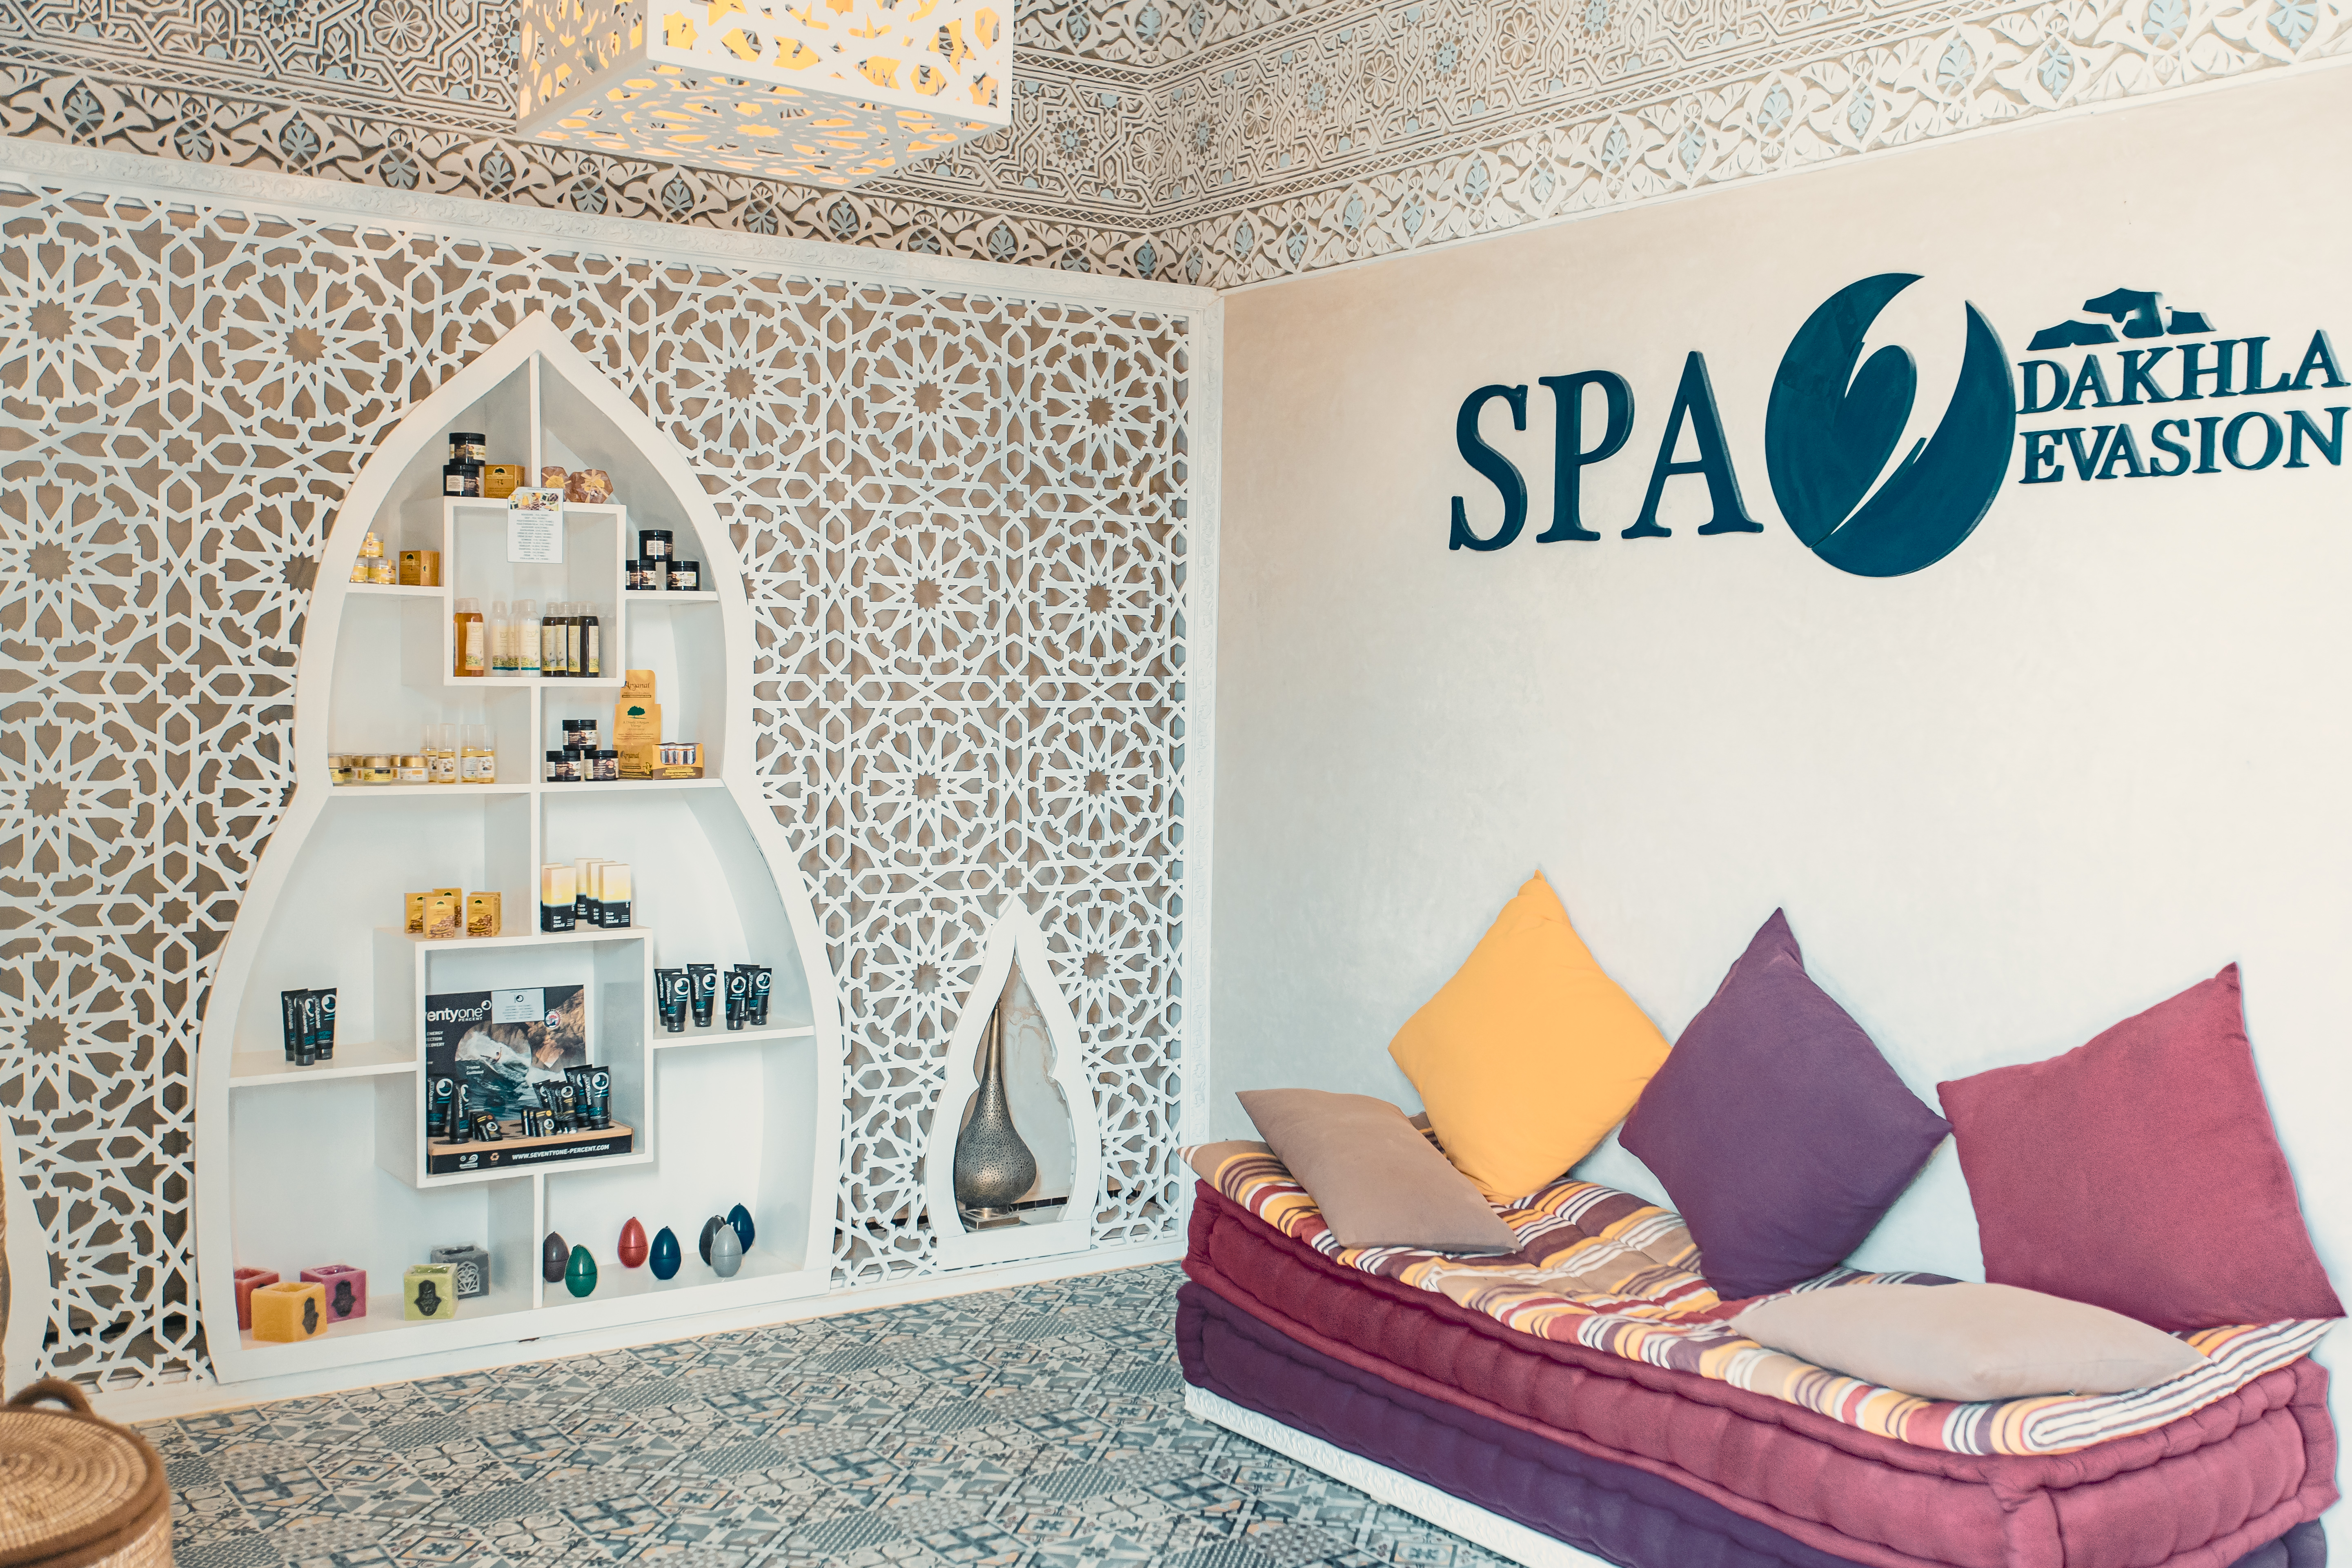 Argan oil at Dakhla Evasion Spa